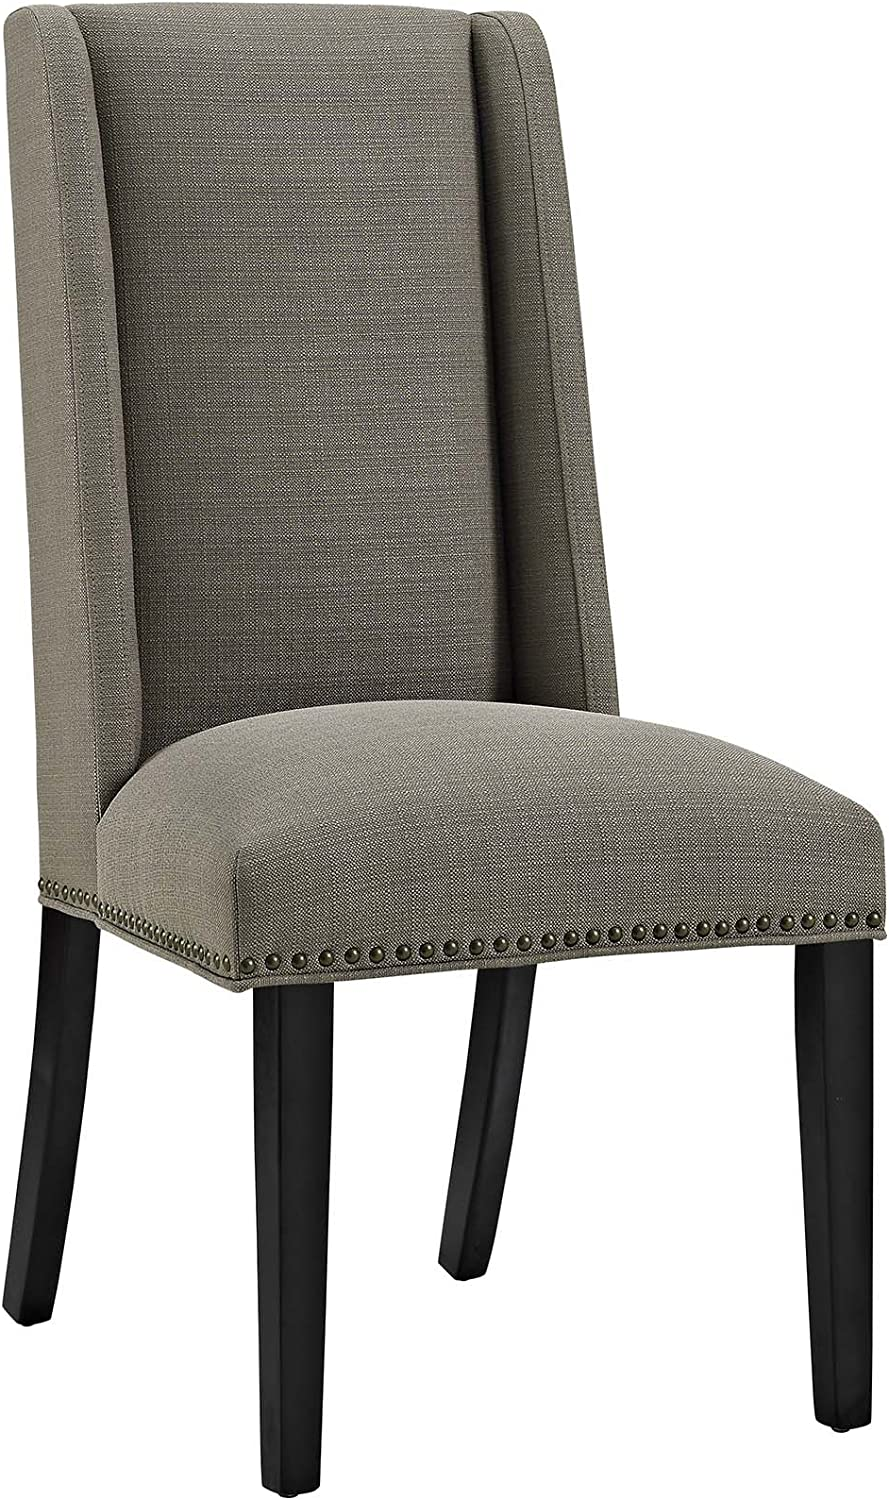 Modway MO- Baron Modern Tall Back Wood Upholstered Fabric, Dining Chair, Granite